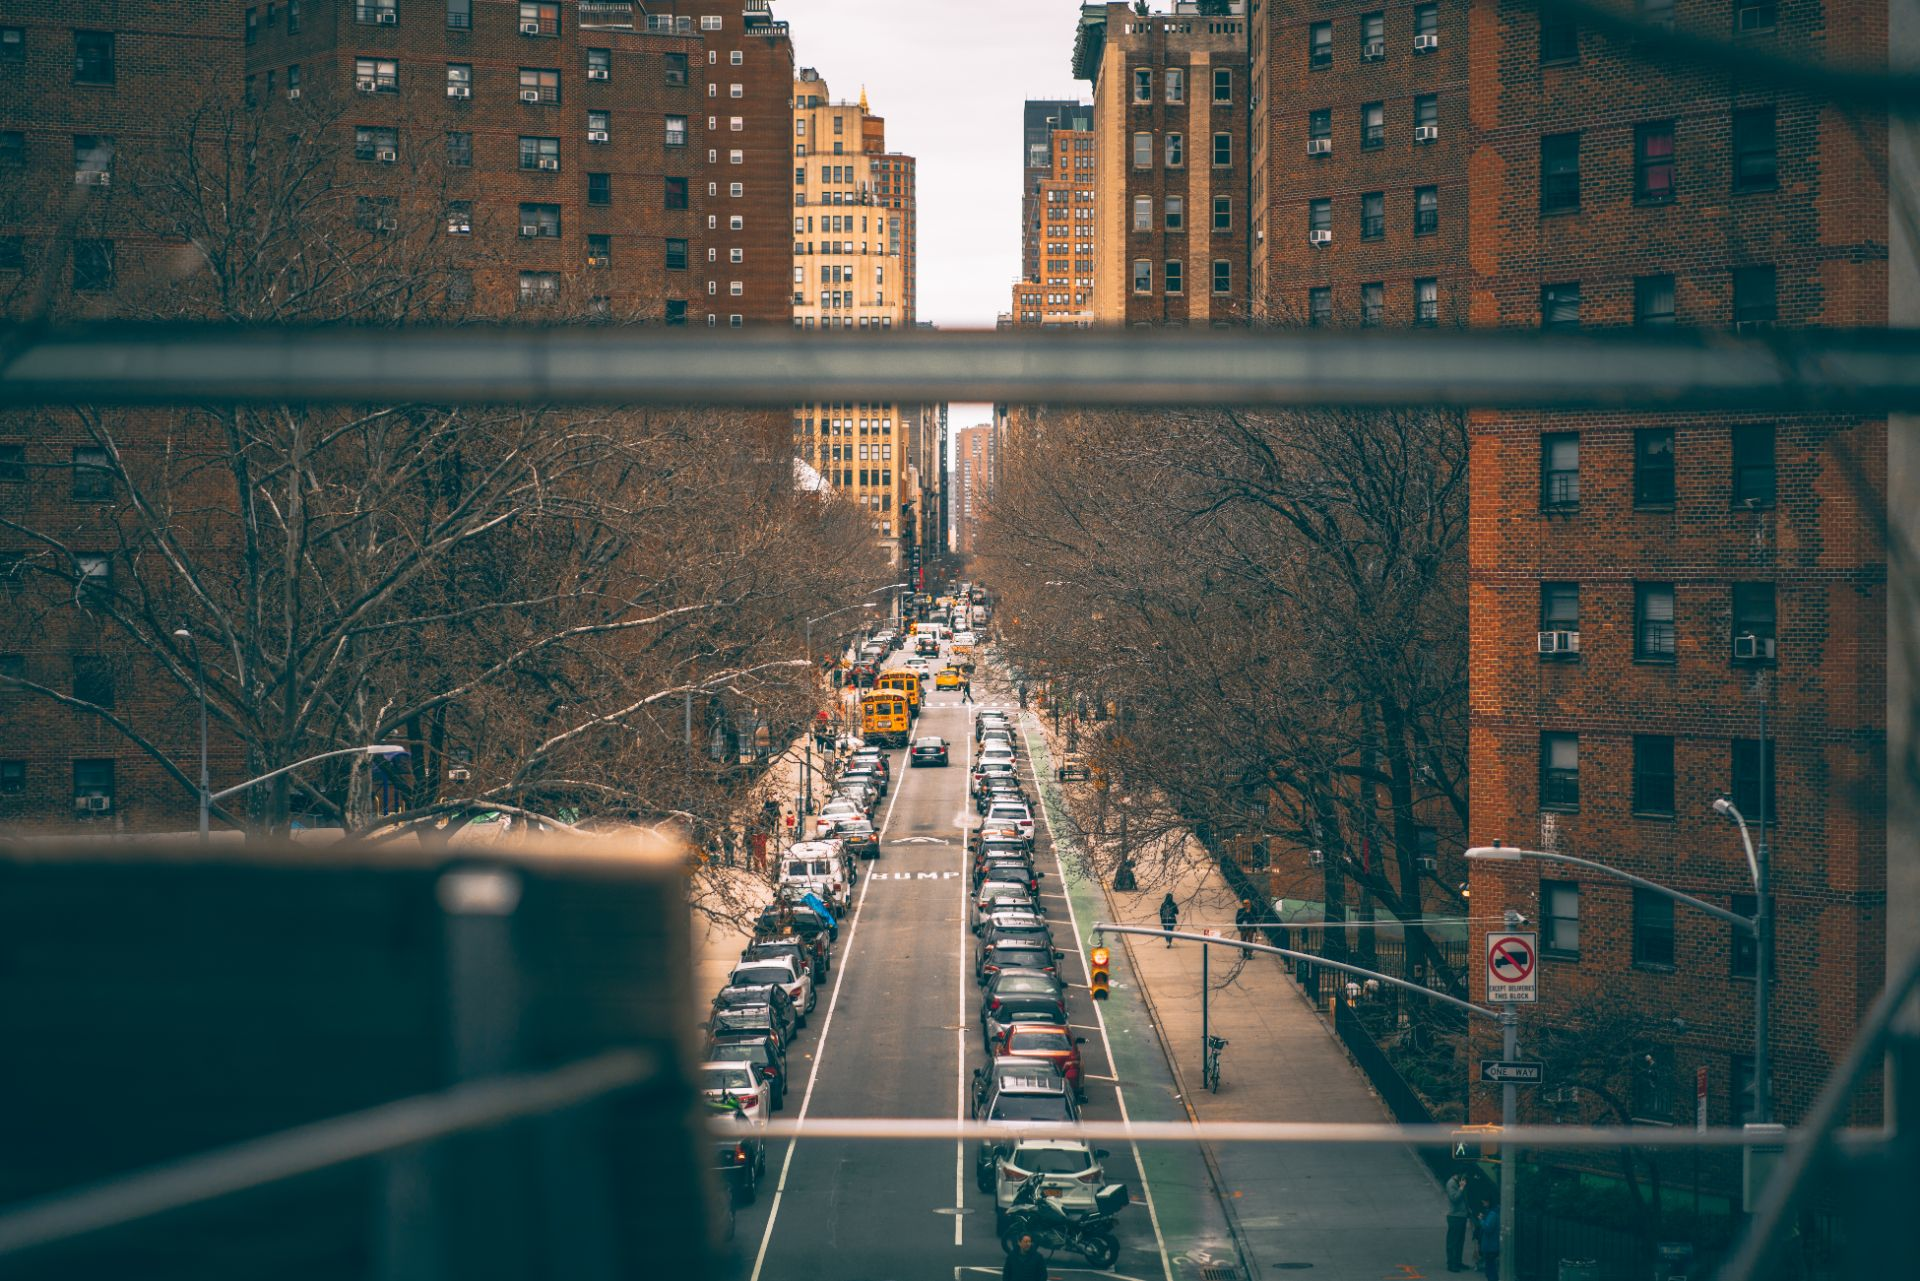 a-view-from-the-high-line-across-to-a-busy-manhattan-street